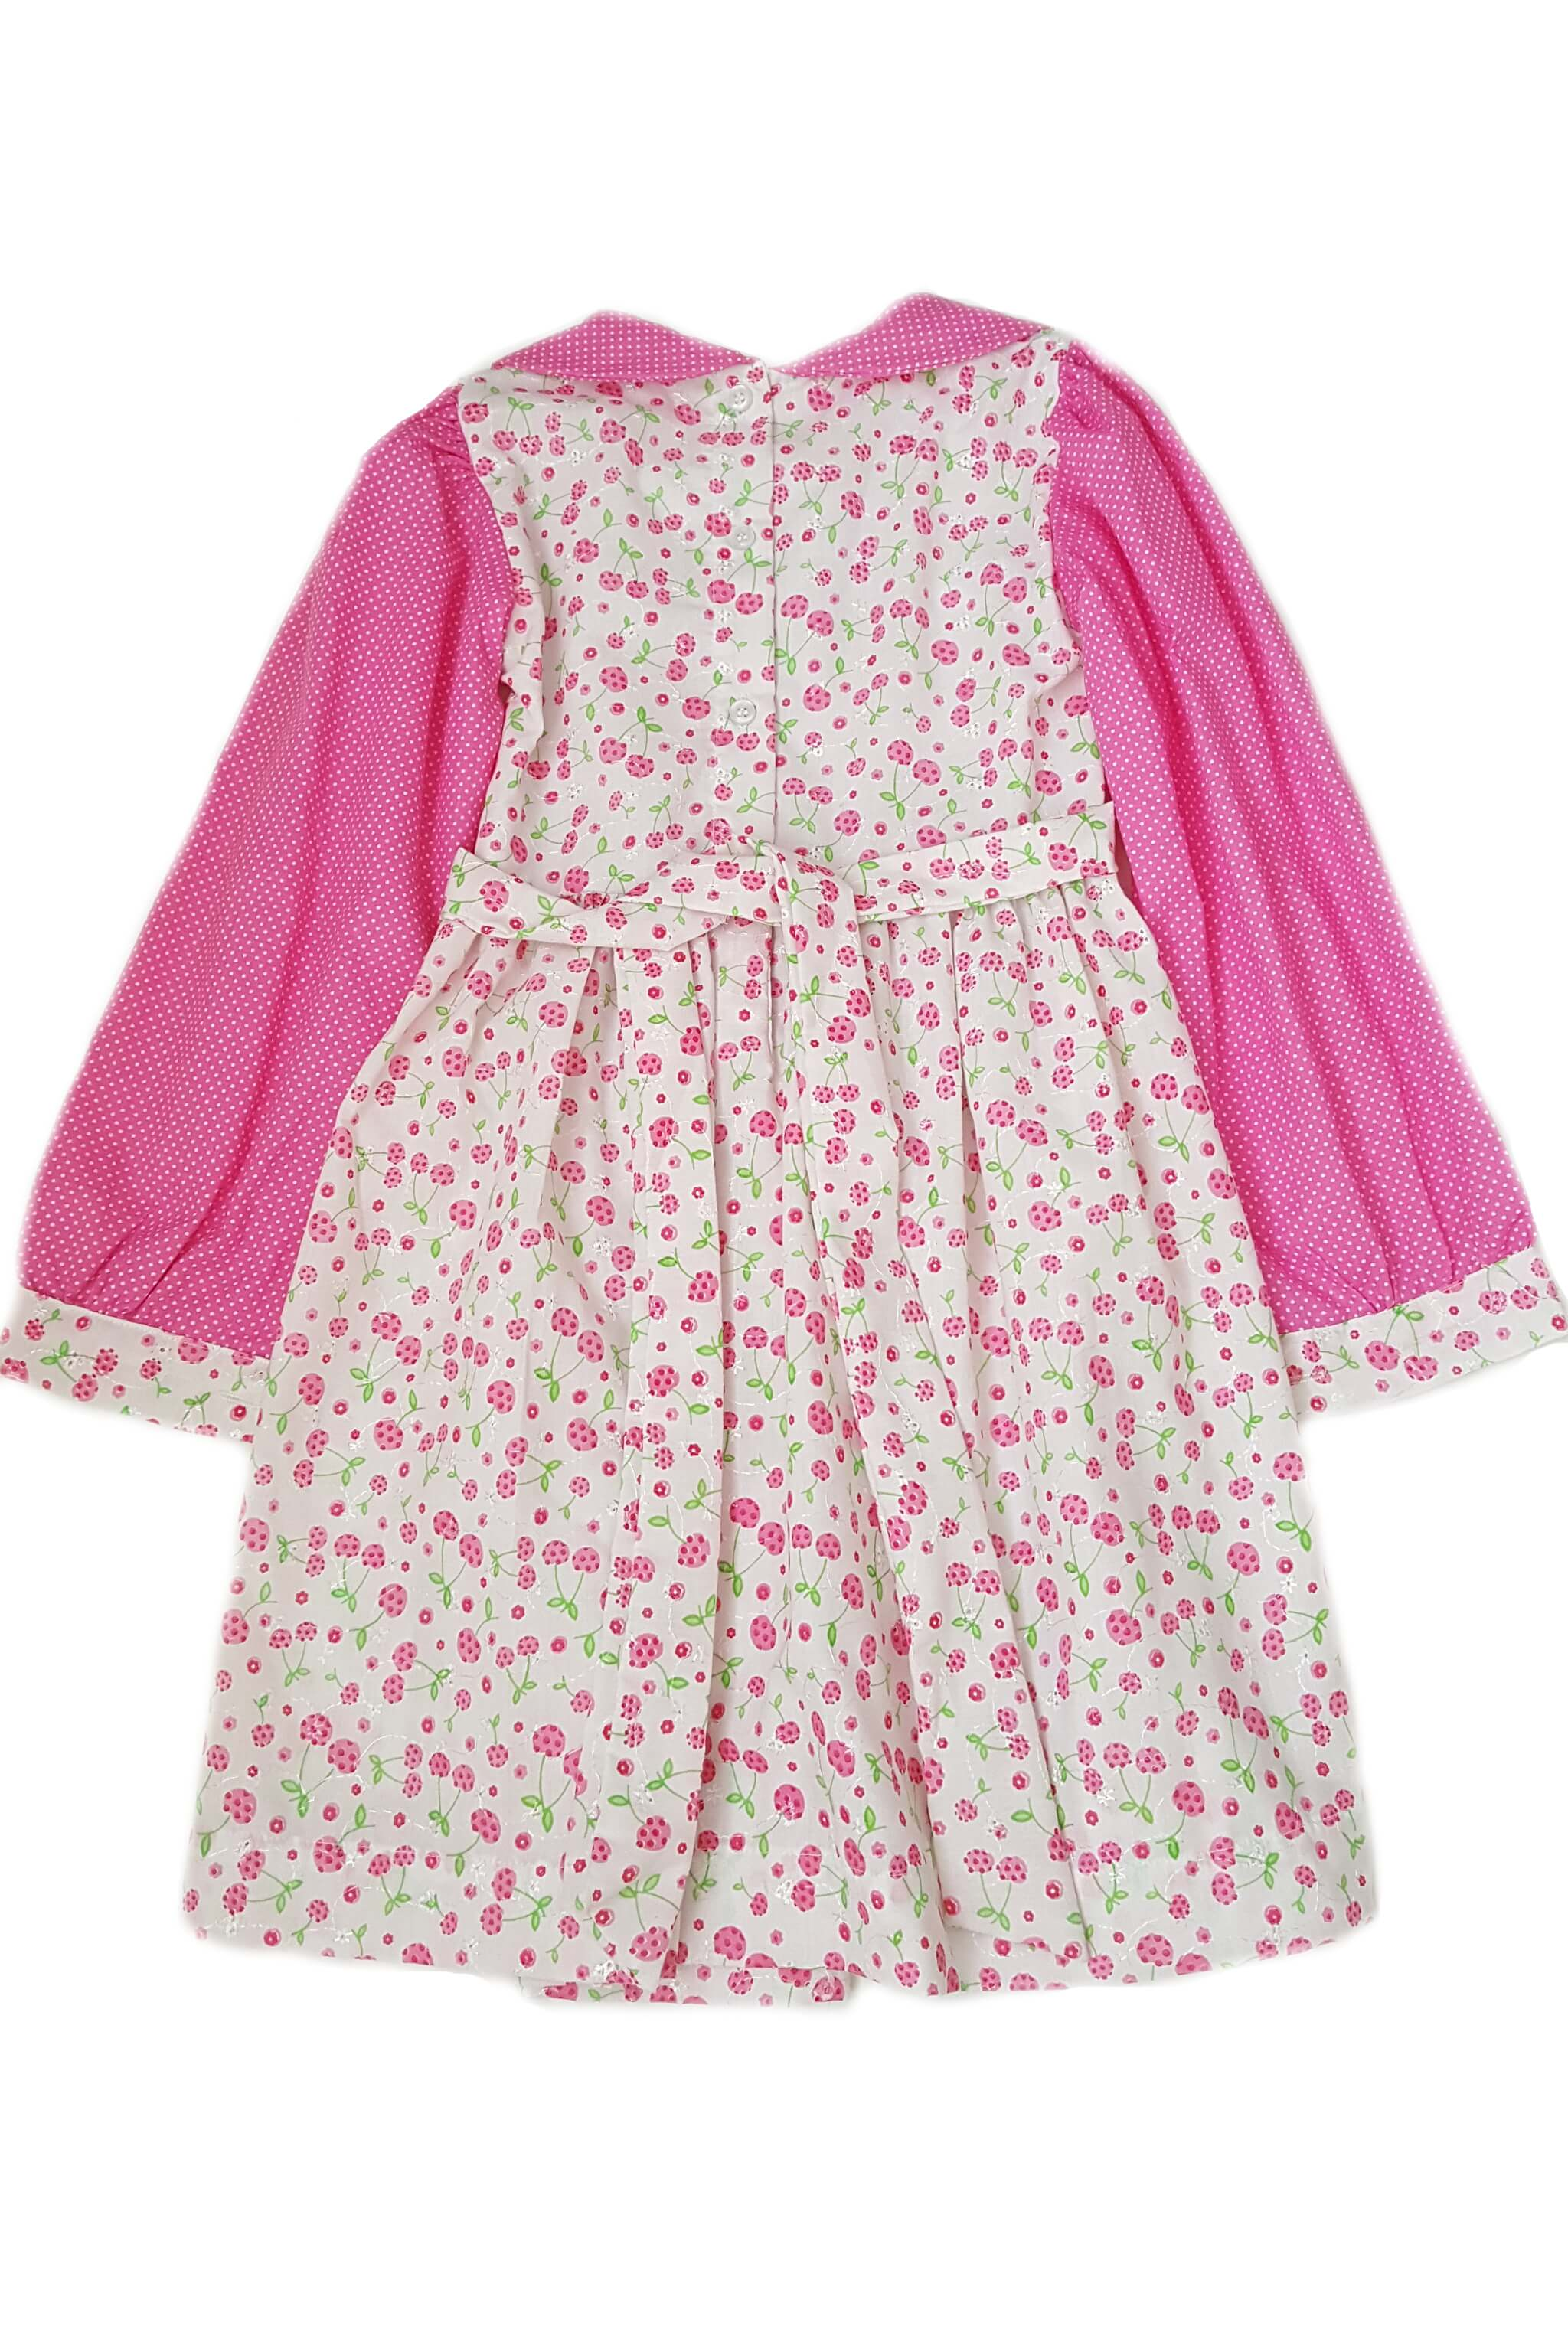 Back of whimsical, fun-loving floral print dress with contrasting sleeves and peter pan collar featuring hand-smocked bodice with button back and sash for girls